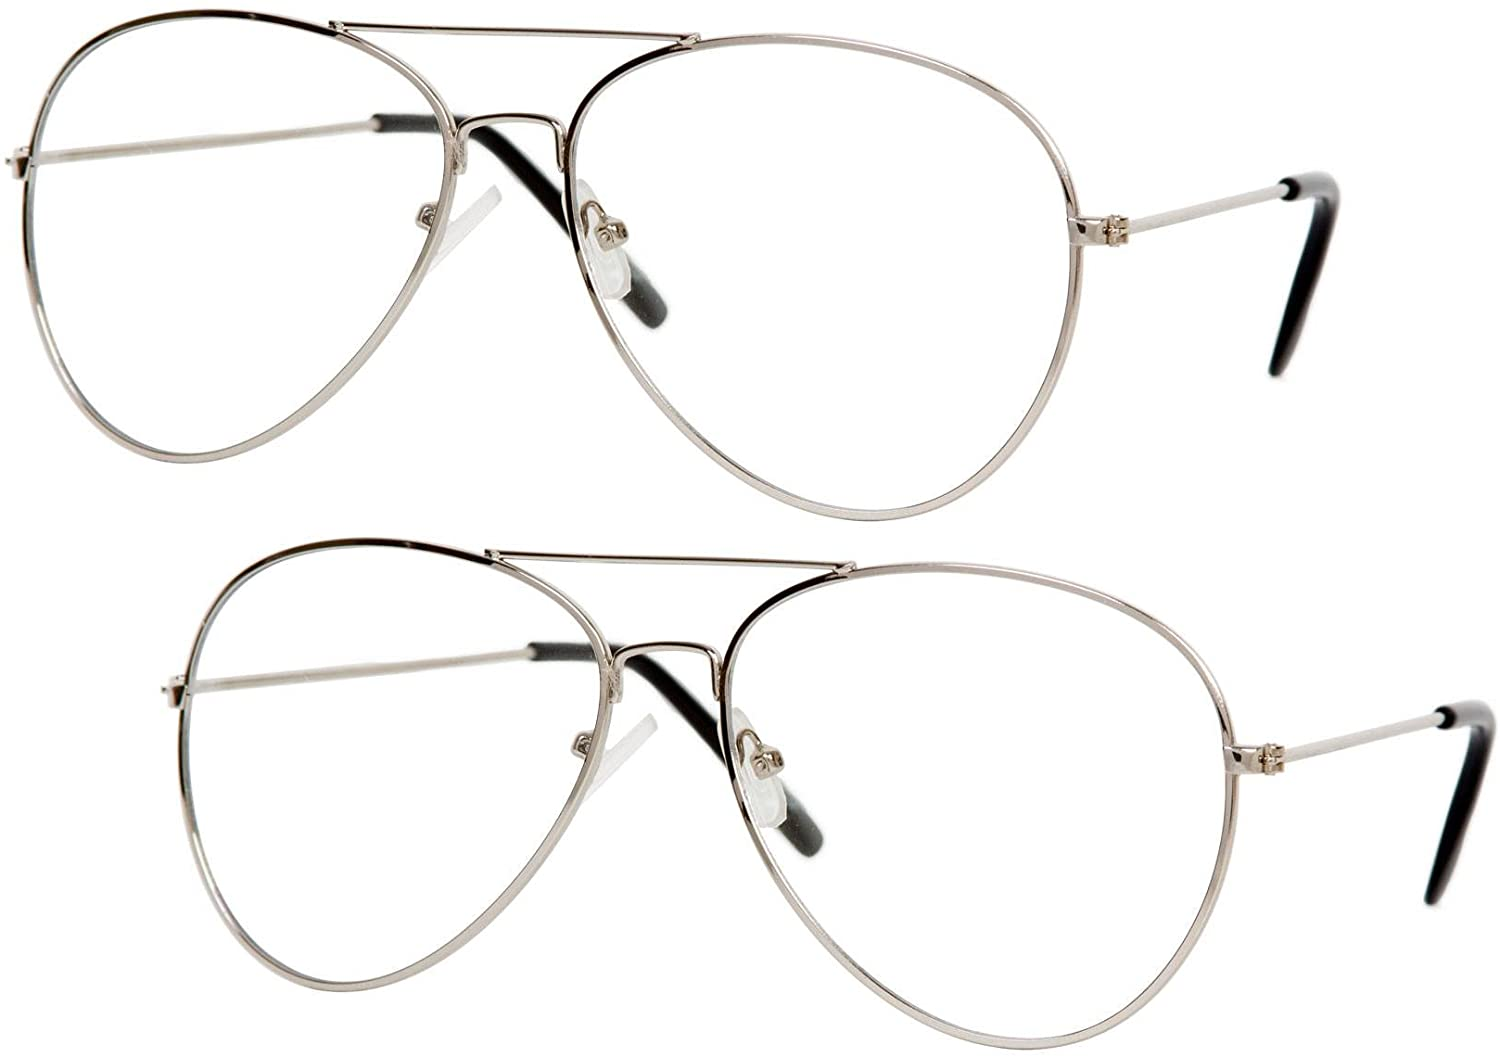 Gravity Shades Clear Lens Aviator Sunglass, Silver 2 Pack